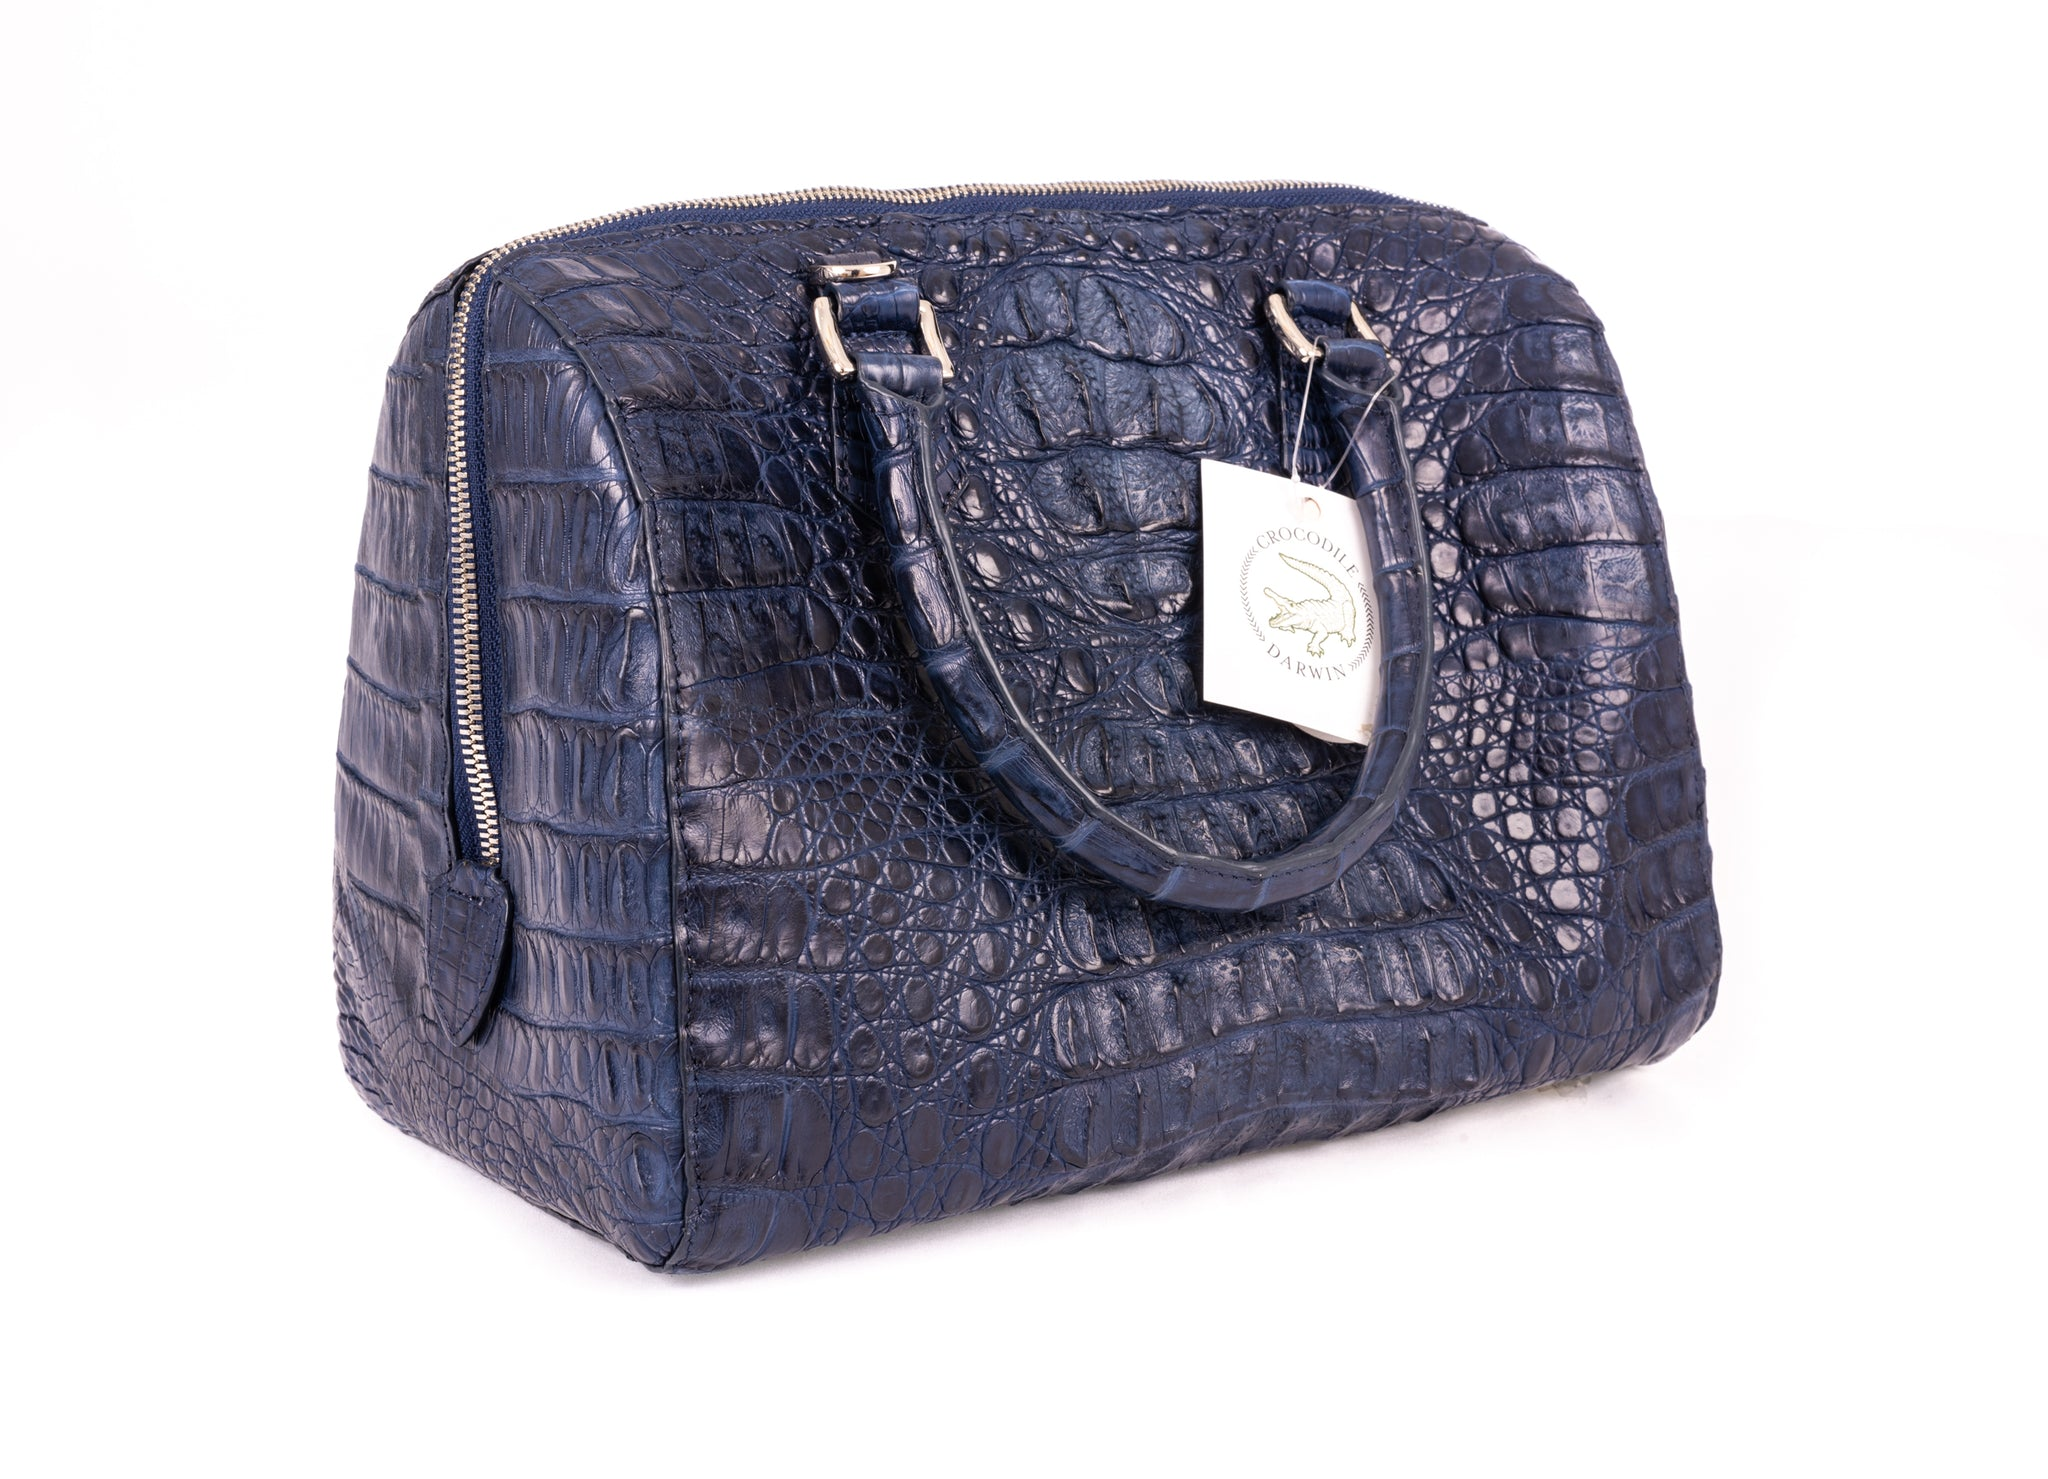 Poppins Crocodile Skin Handbag